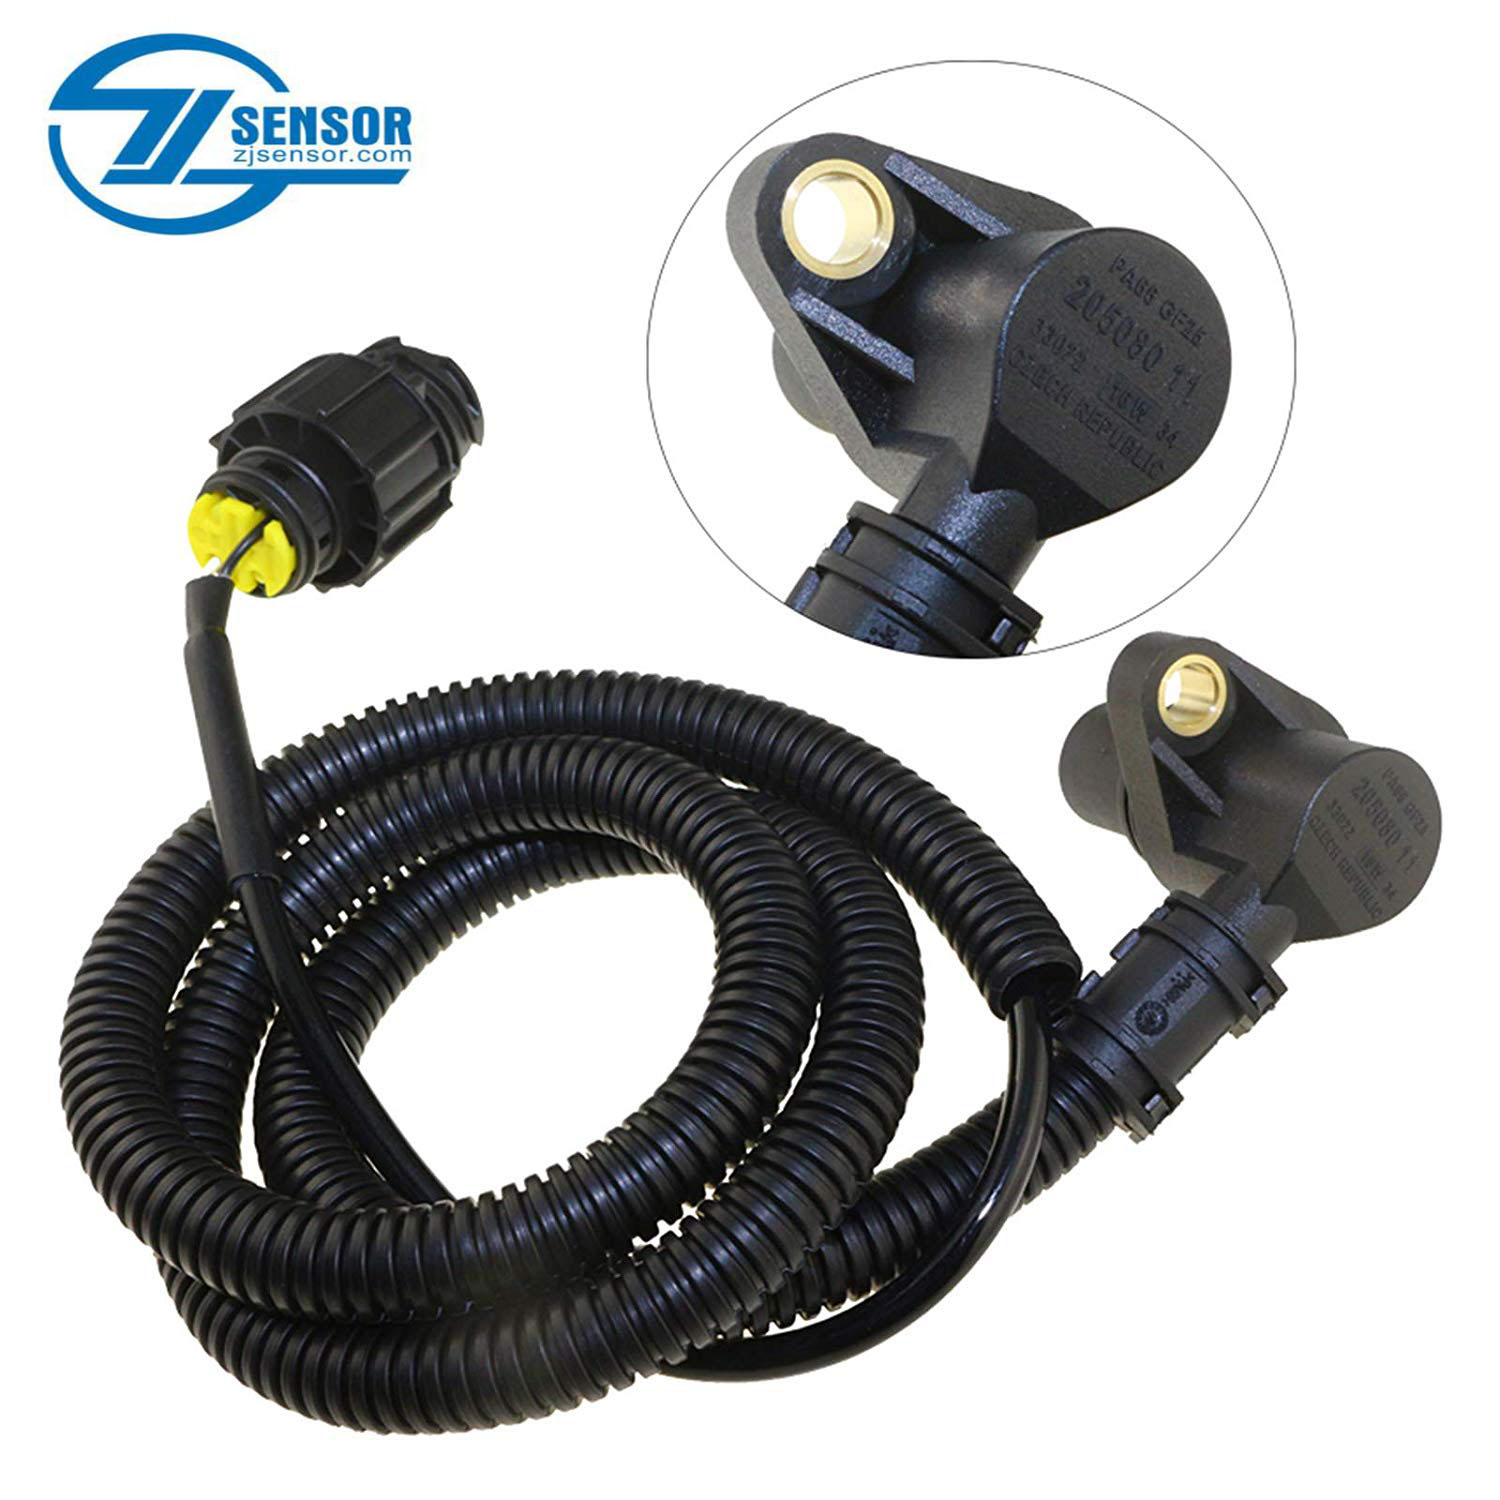 20374282 Crankshaft Position Sensor For Volvo 20508011